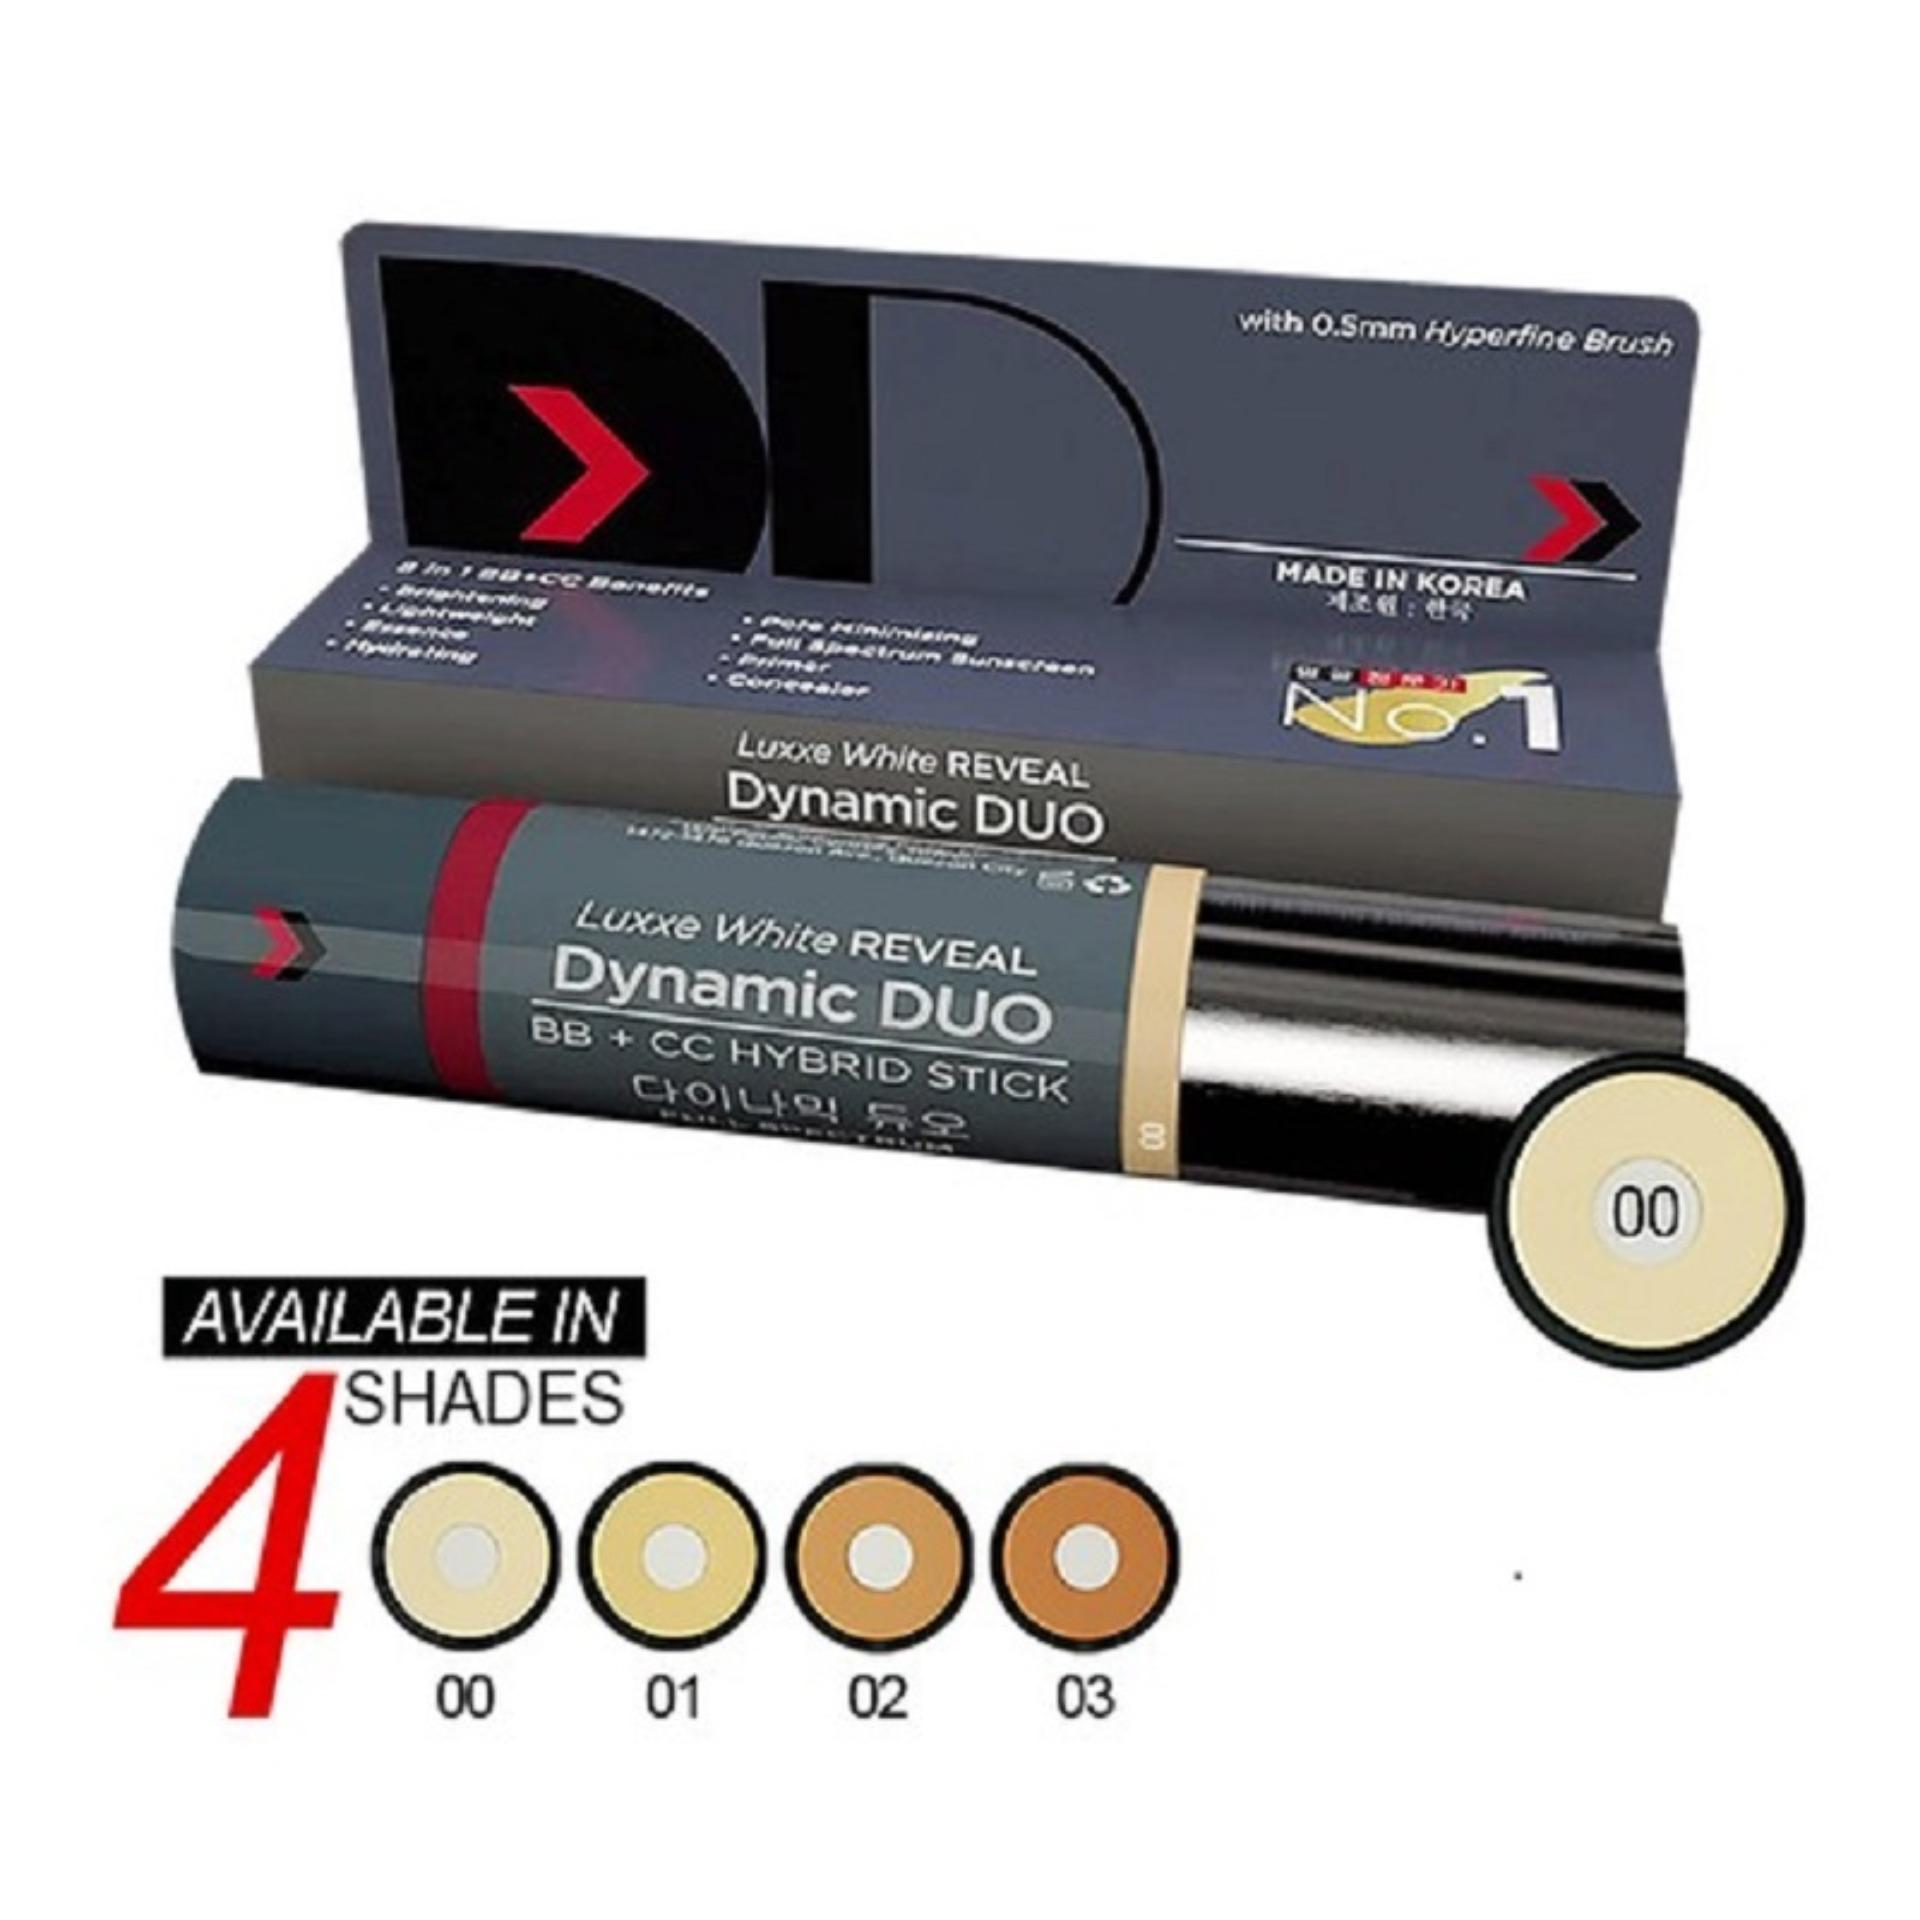 Luxxe White Reveal DYNAMIC DUO BB + CC HYBRID STICK 00 Philippines